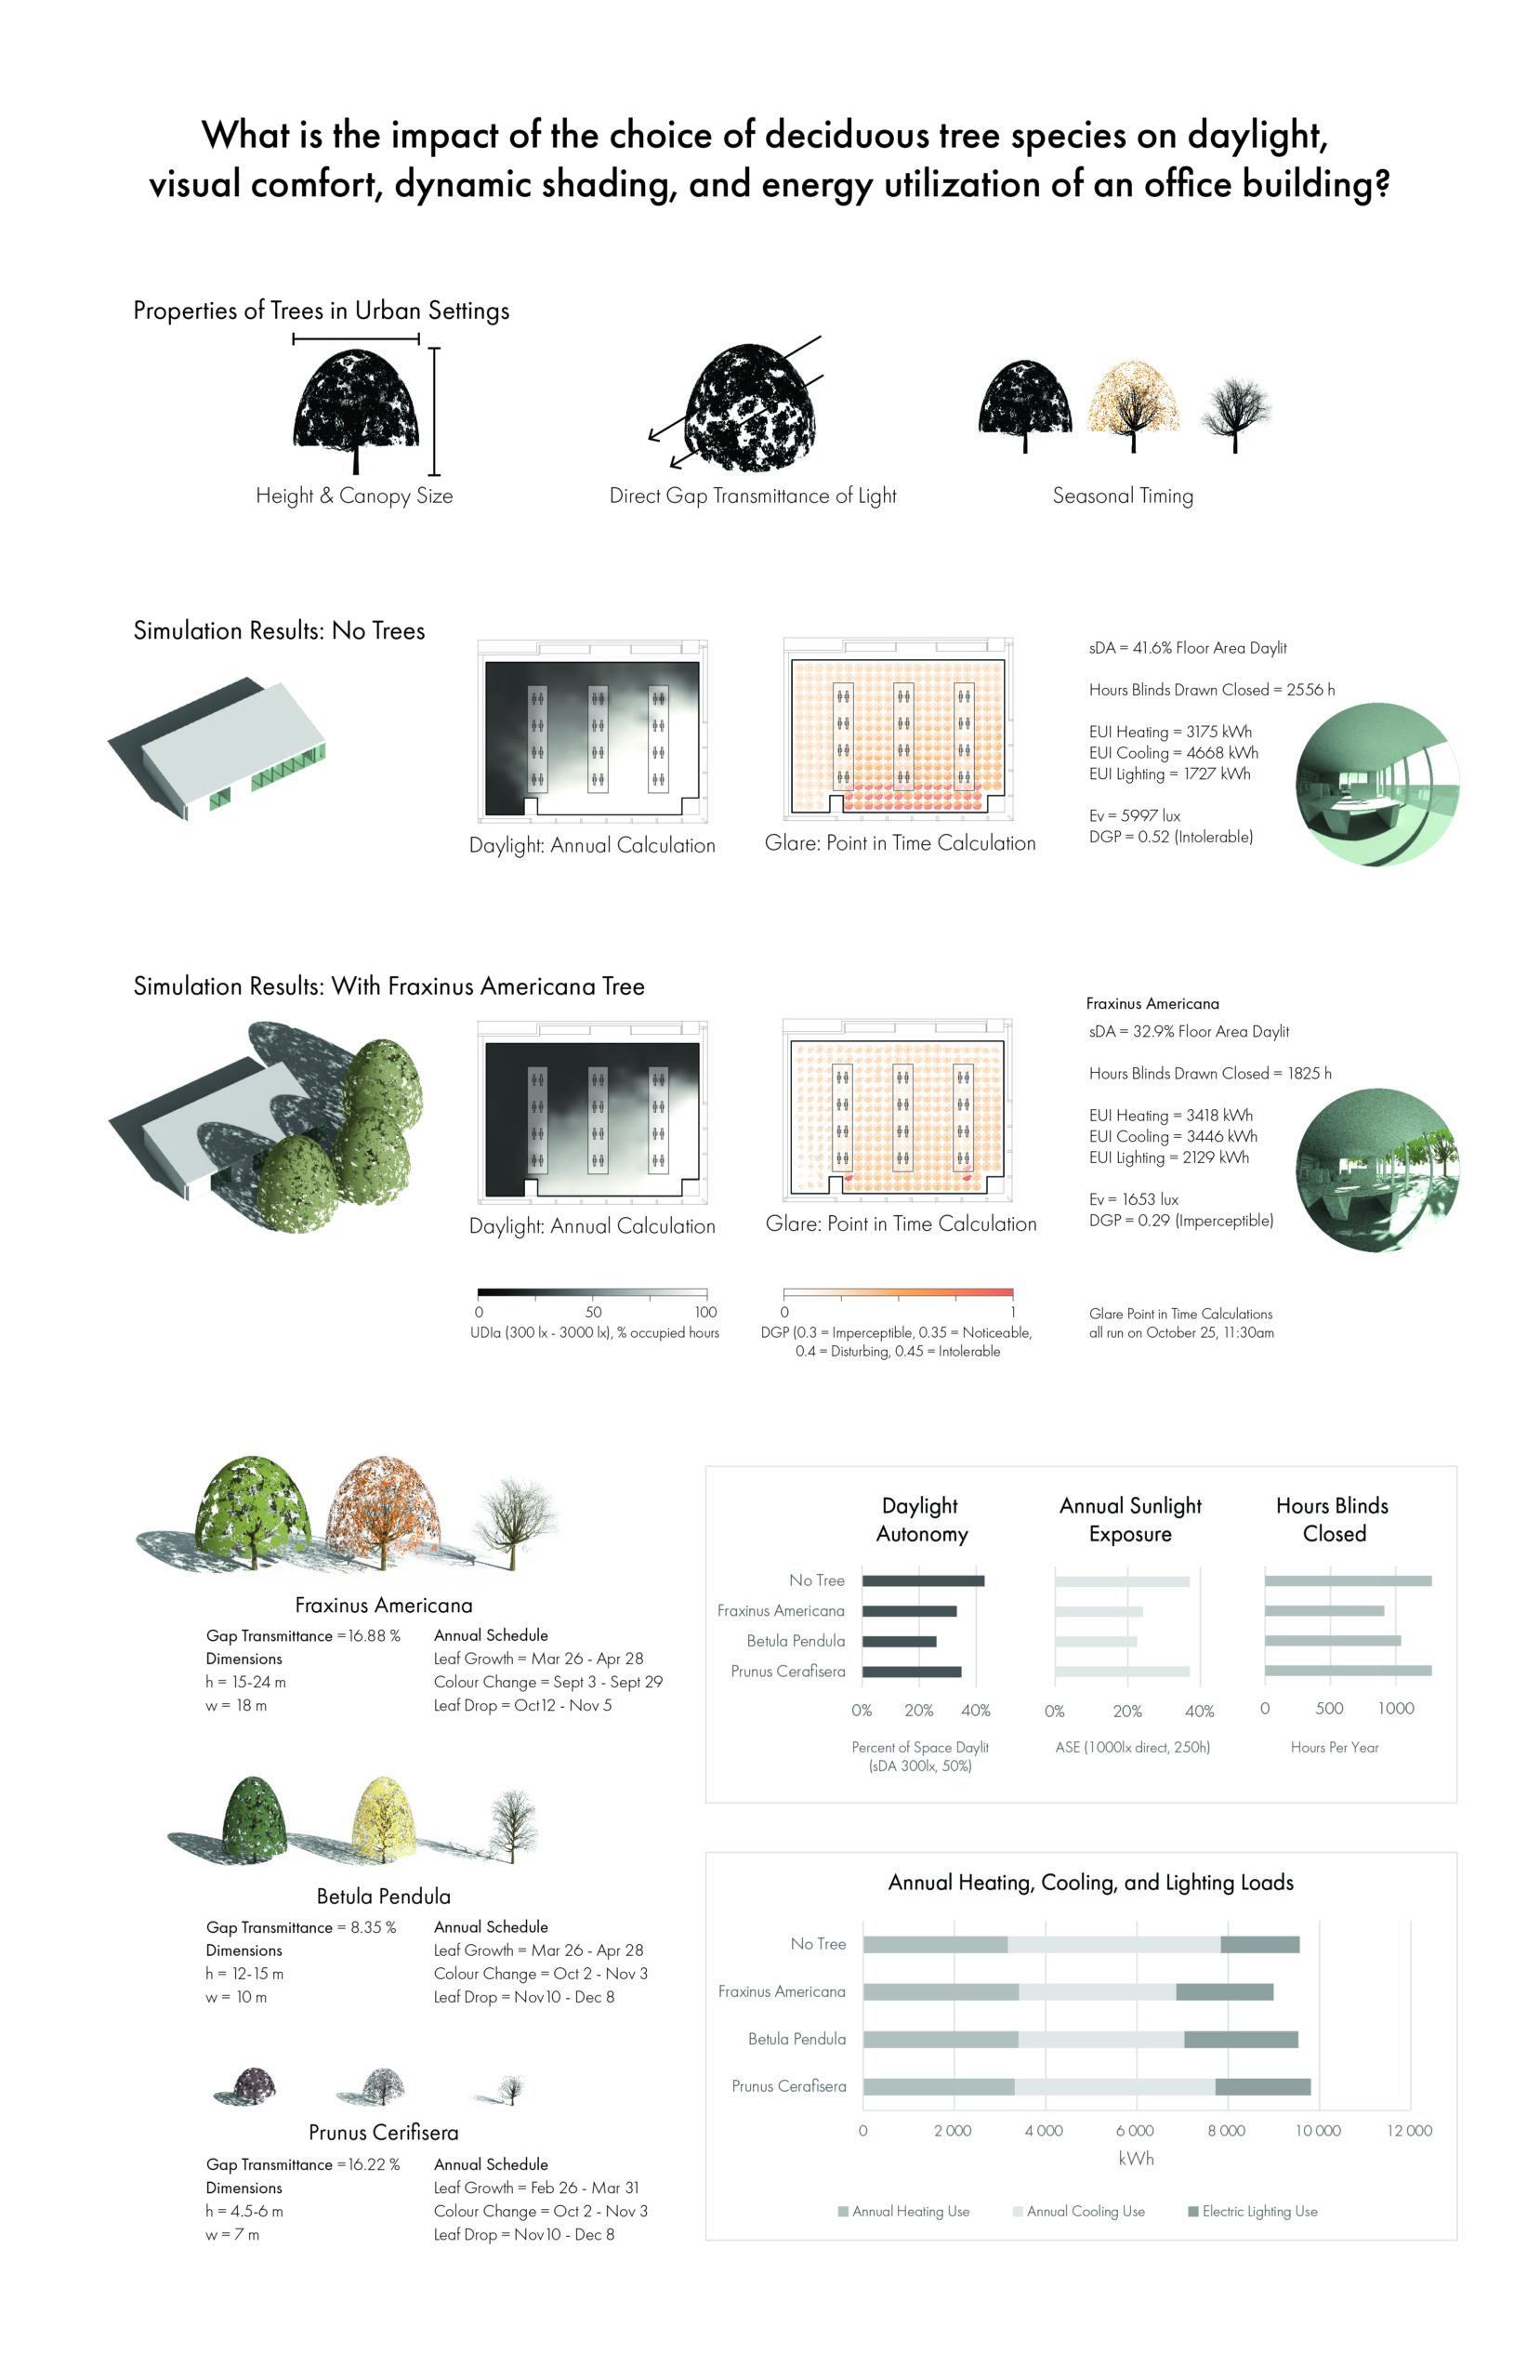 What is the impact of the choice of deciduous tree species on daylight, visual comfort, dynamic shading, and energy utilization of an office building?